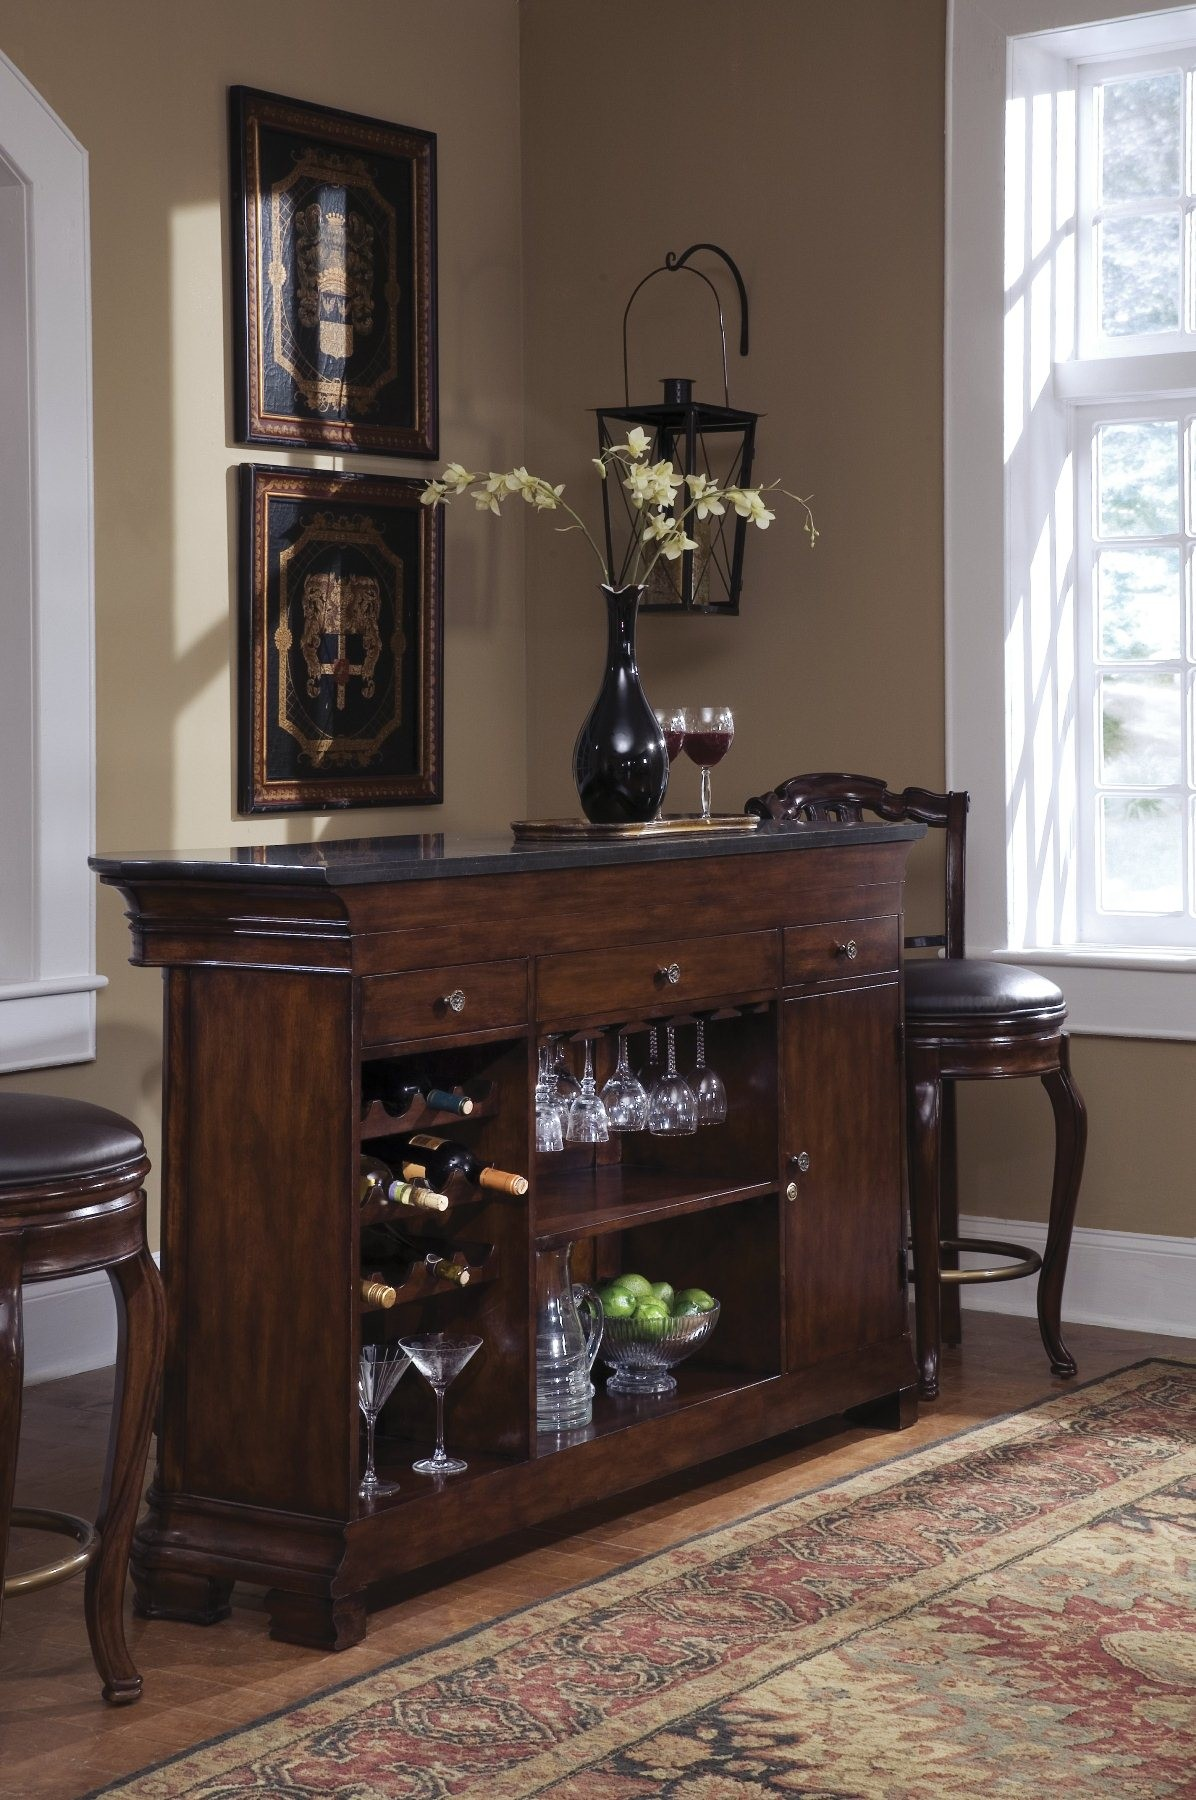 Toscano Vialetto Bar From Pulaski 657500 Coleman Furniture